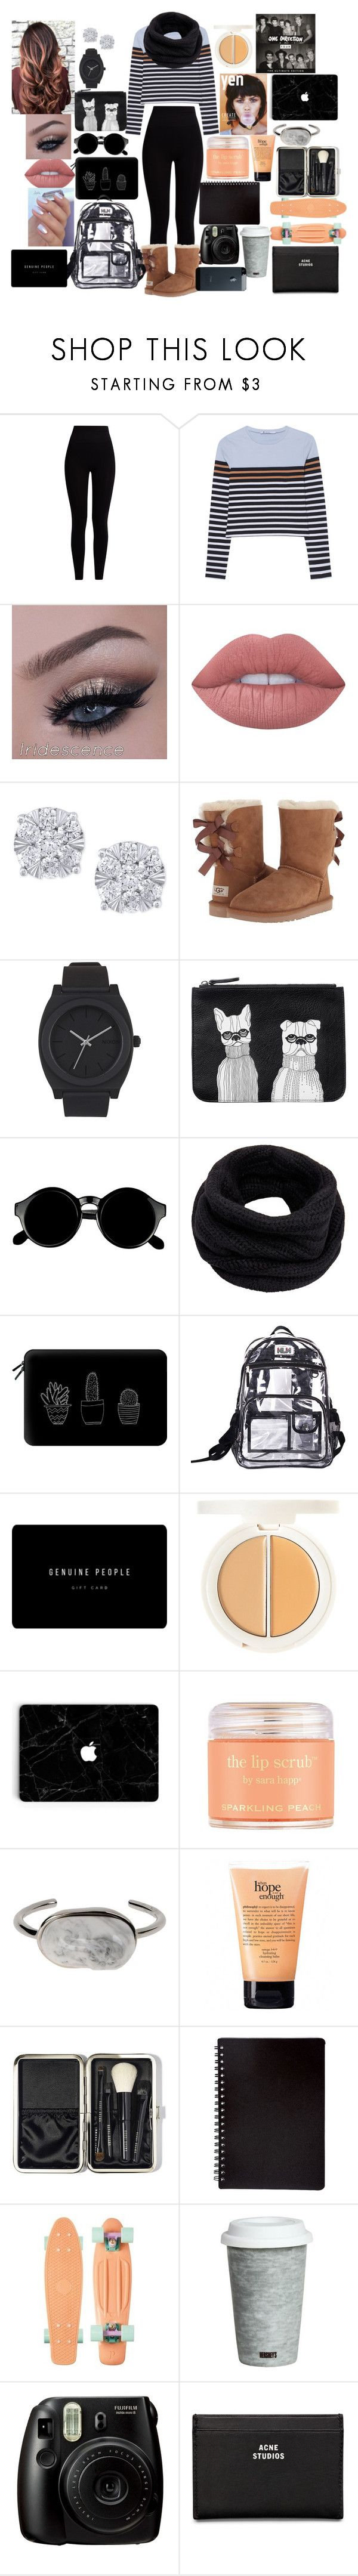 """Evangaline potter #12"" by annaconley on Polyvore featuring Pepper & Mayne, T By Alexander Wang, Lime Crime, Effy Jewelry, UGG Australia, Nixon, Monki, Retrò, Helmut Lang and Casetify"